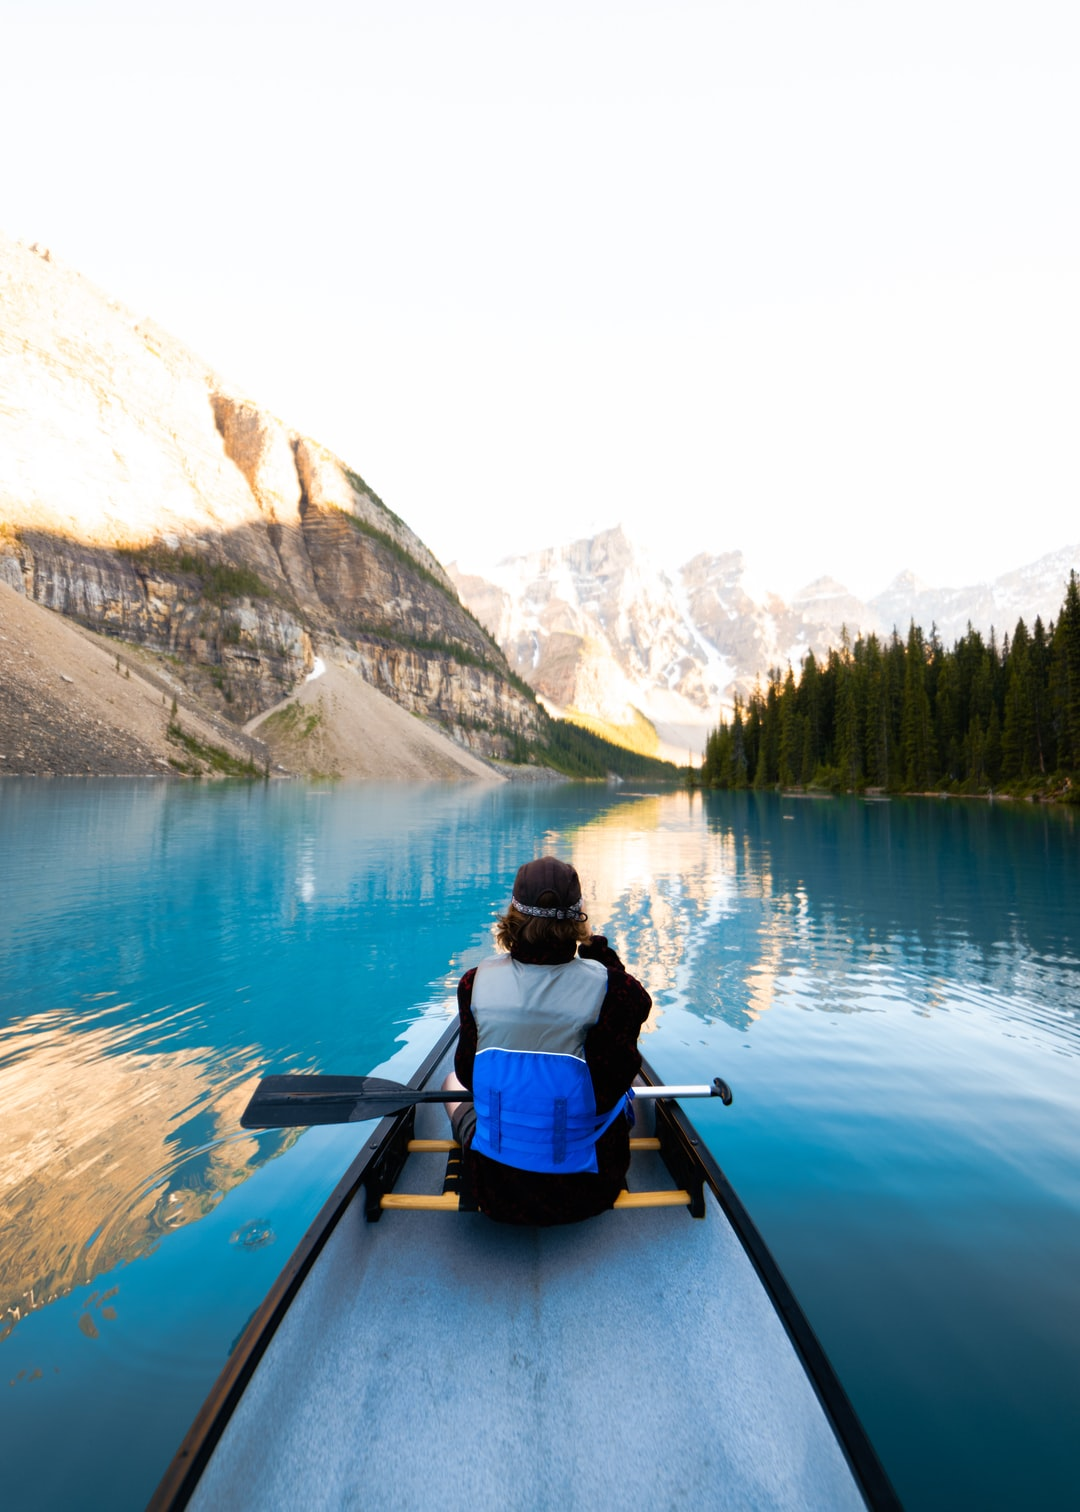 Canoe Pictures Hd Download Free Images On Unsplash